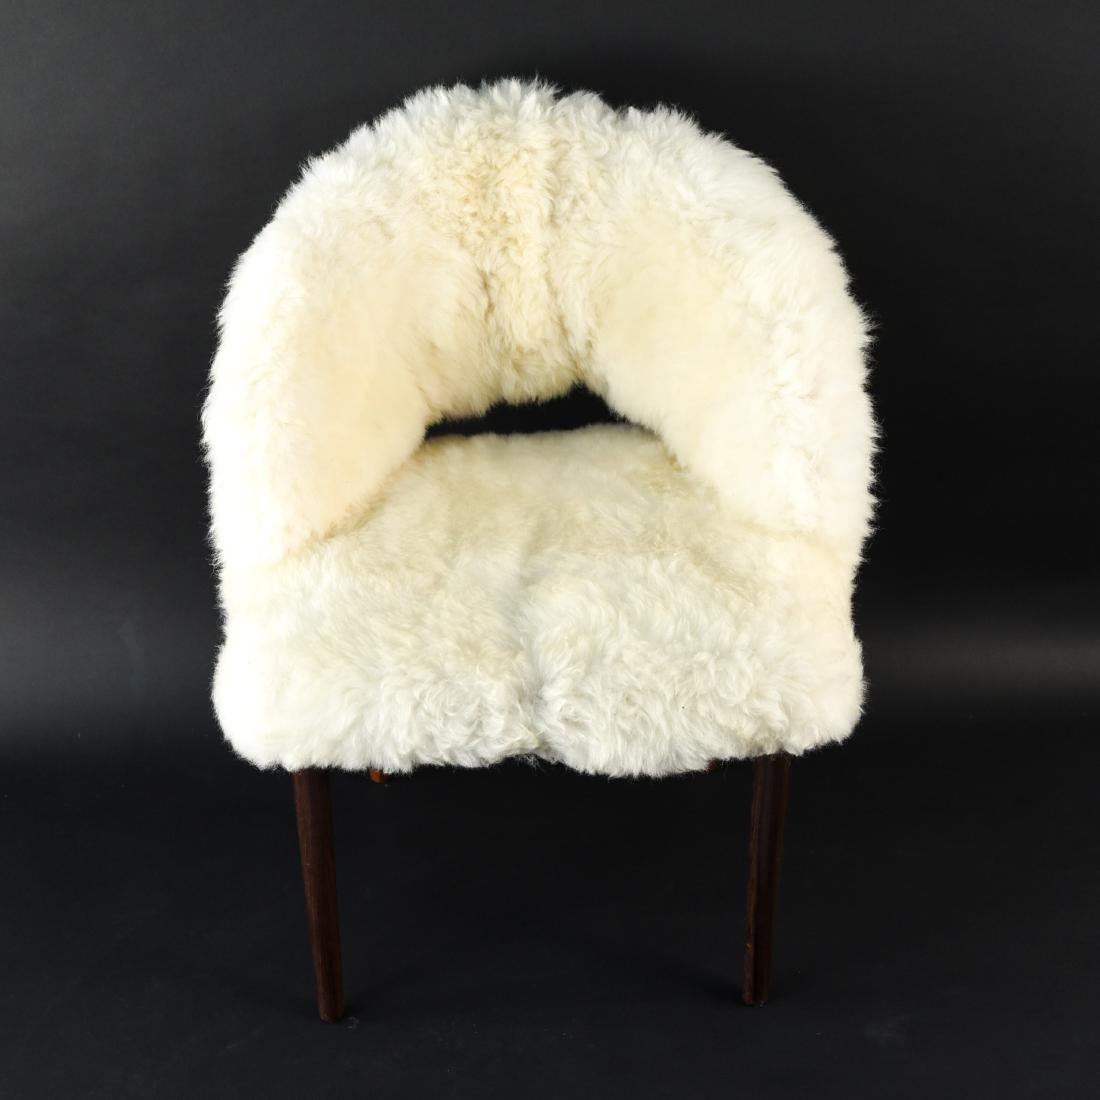 DANISH FRODE HOLM VANITY CHAIR IN LAMBS WOOL - 3